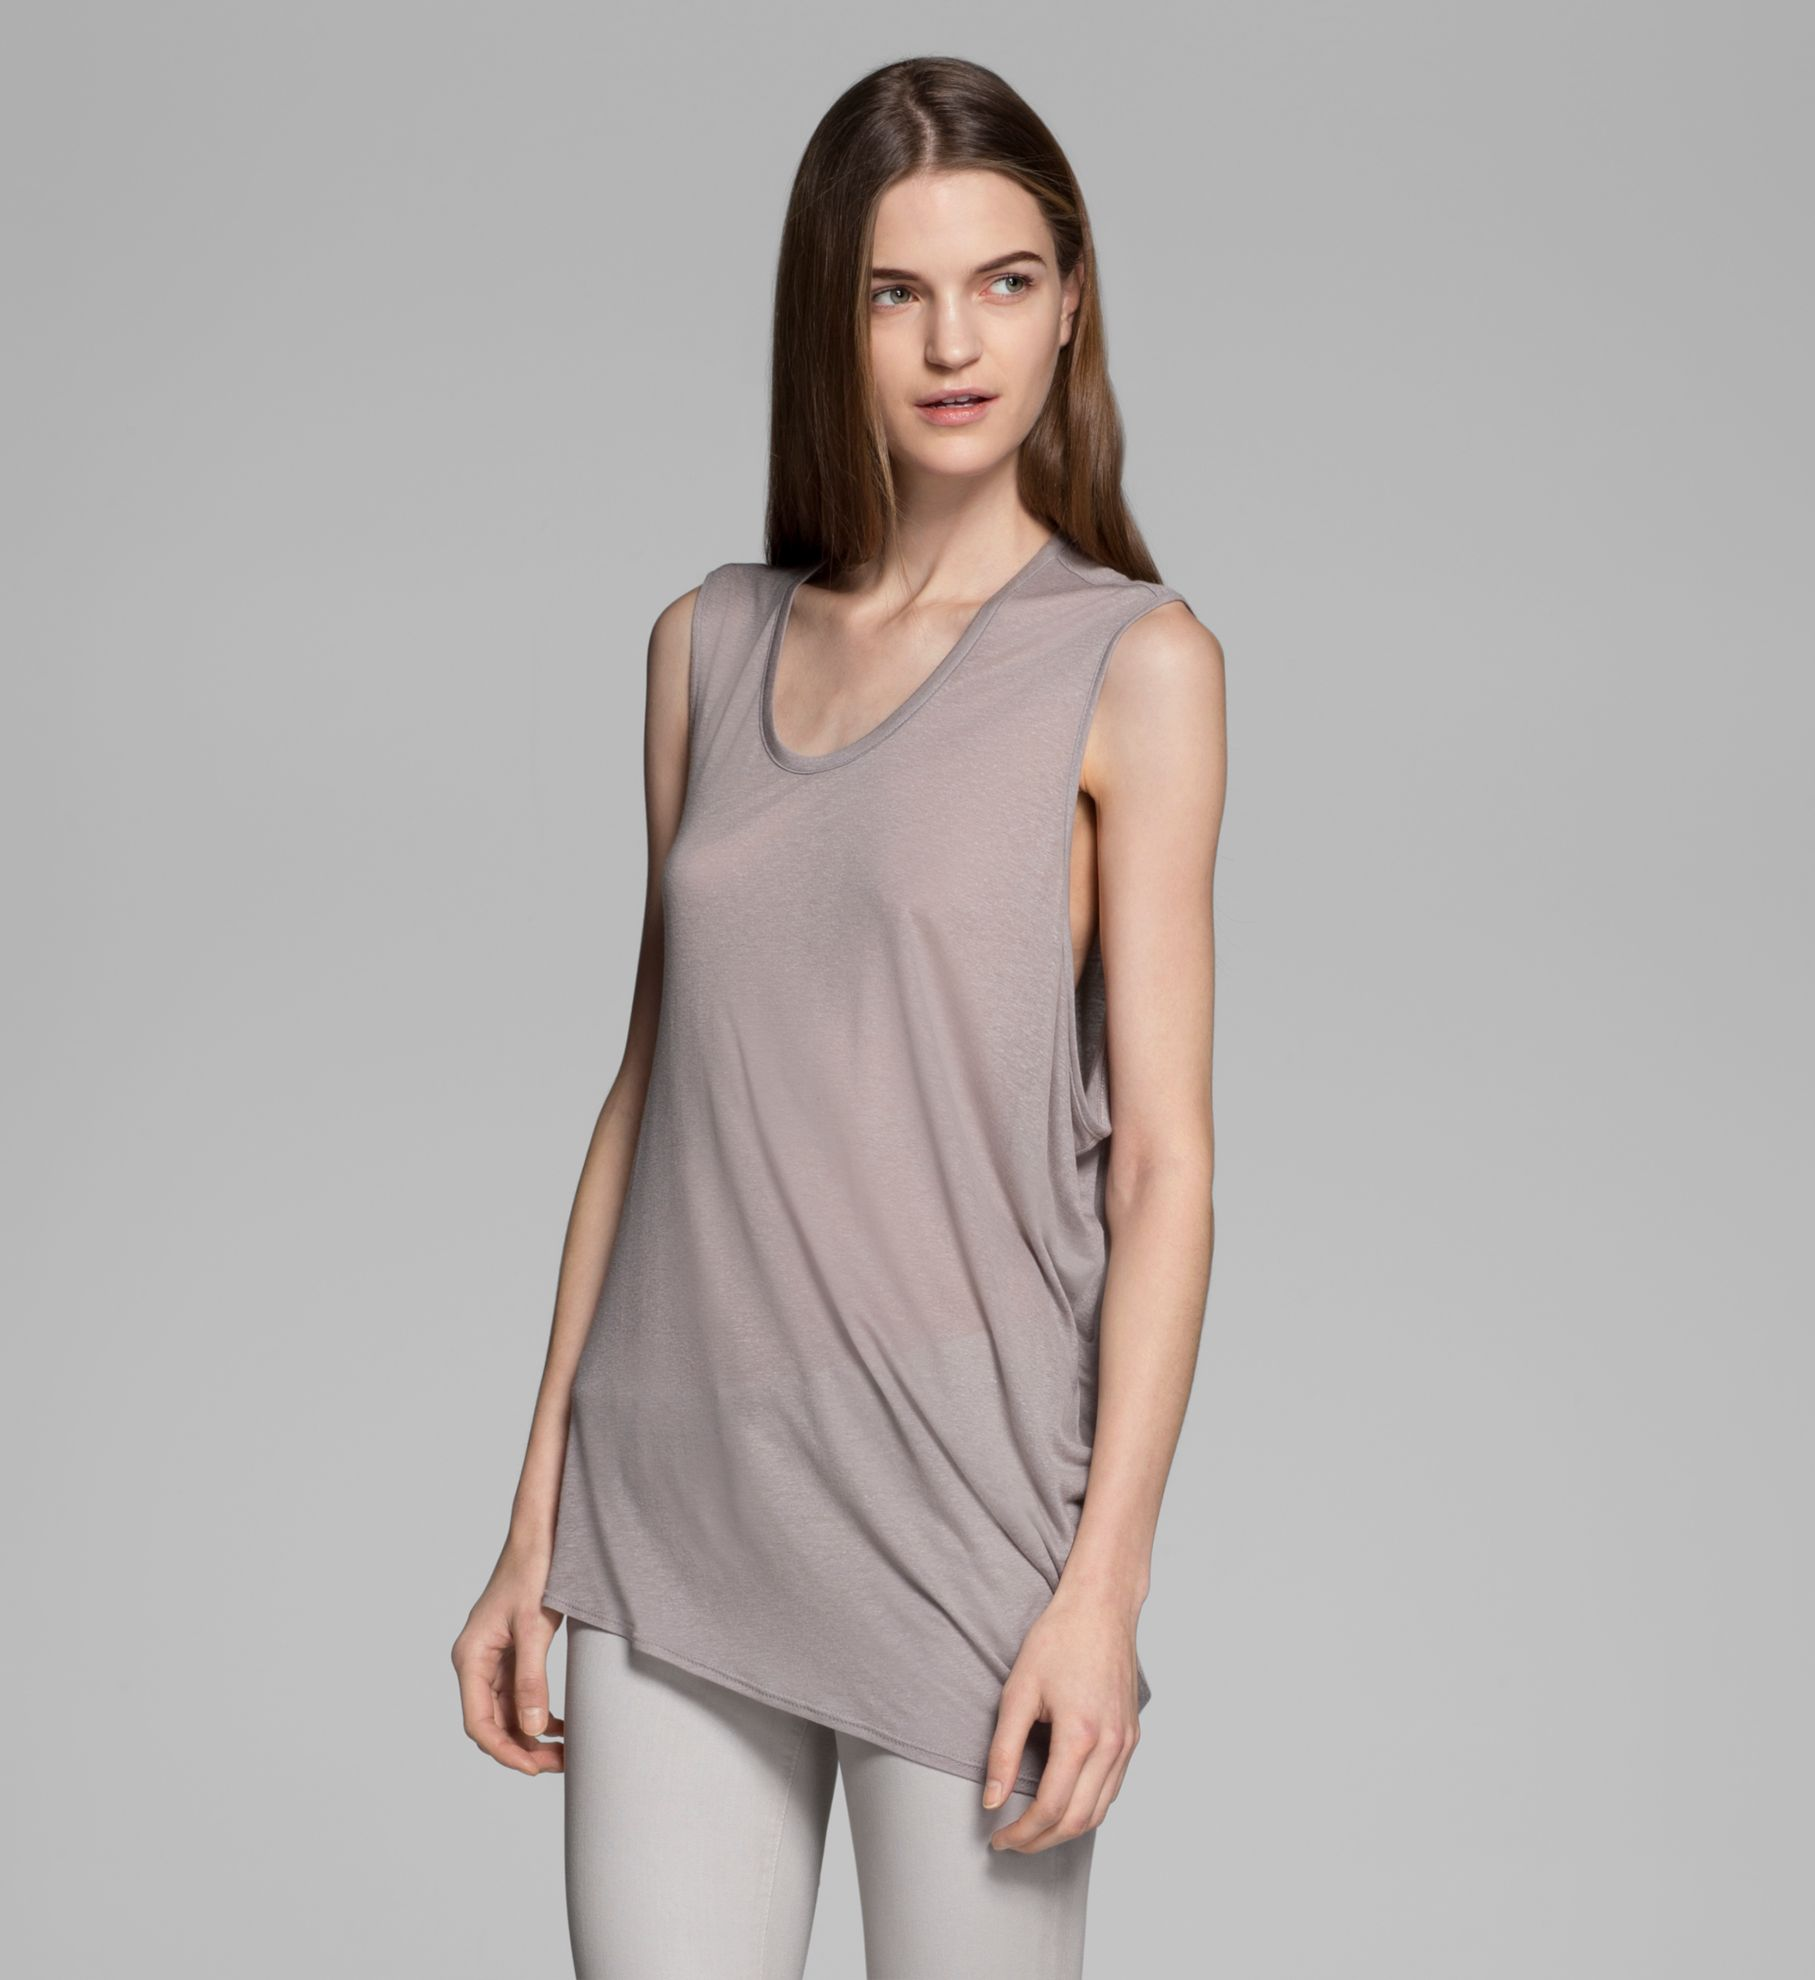 POLISHED SLUB JERSEY SLEEVELESS TOP